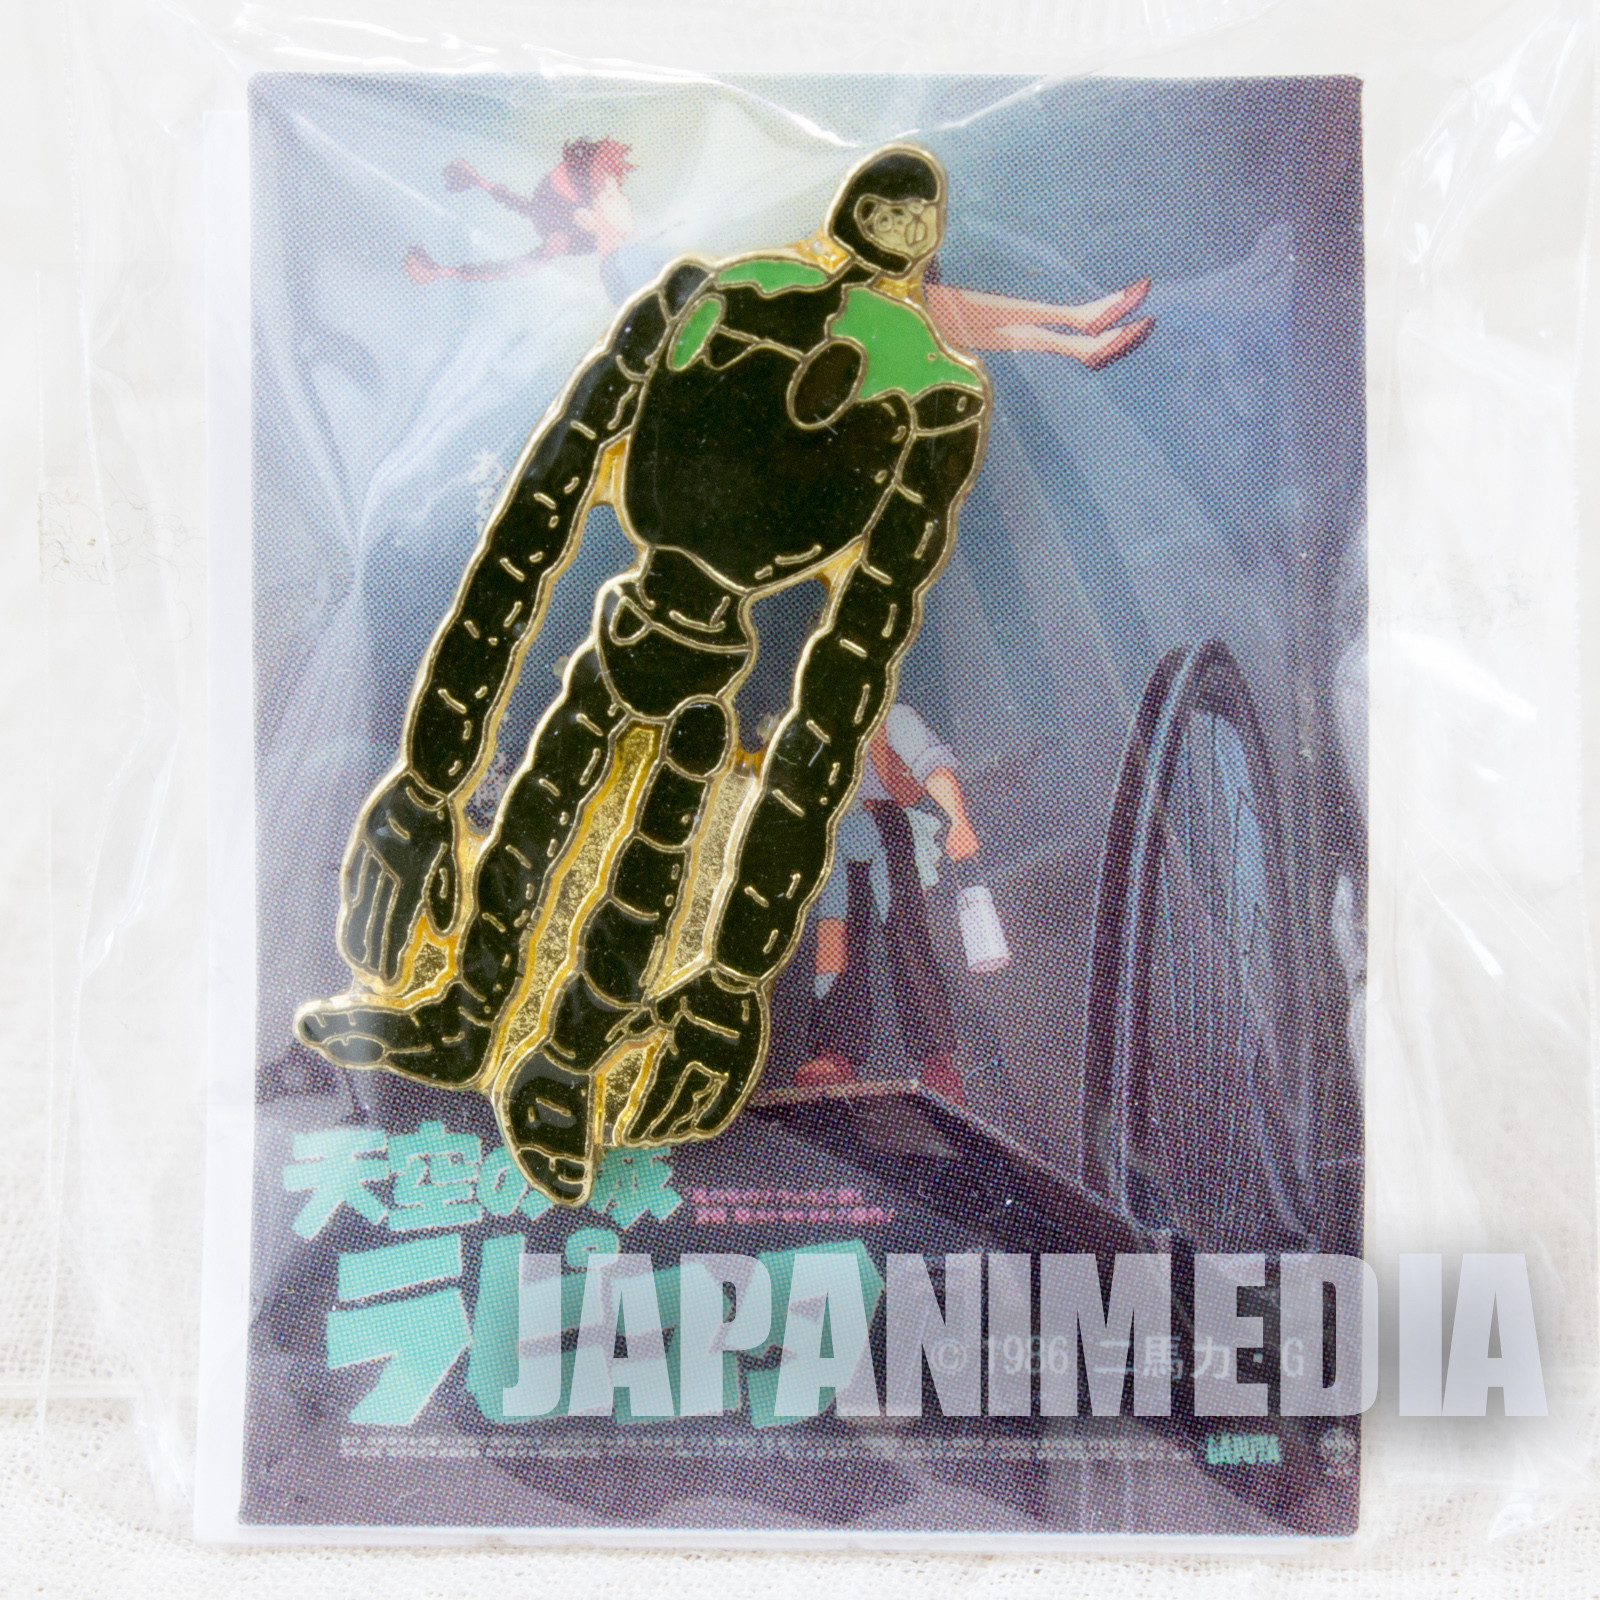 Castle in the Sky Robot Soldier Pins Ghibli JAPAN ANIME